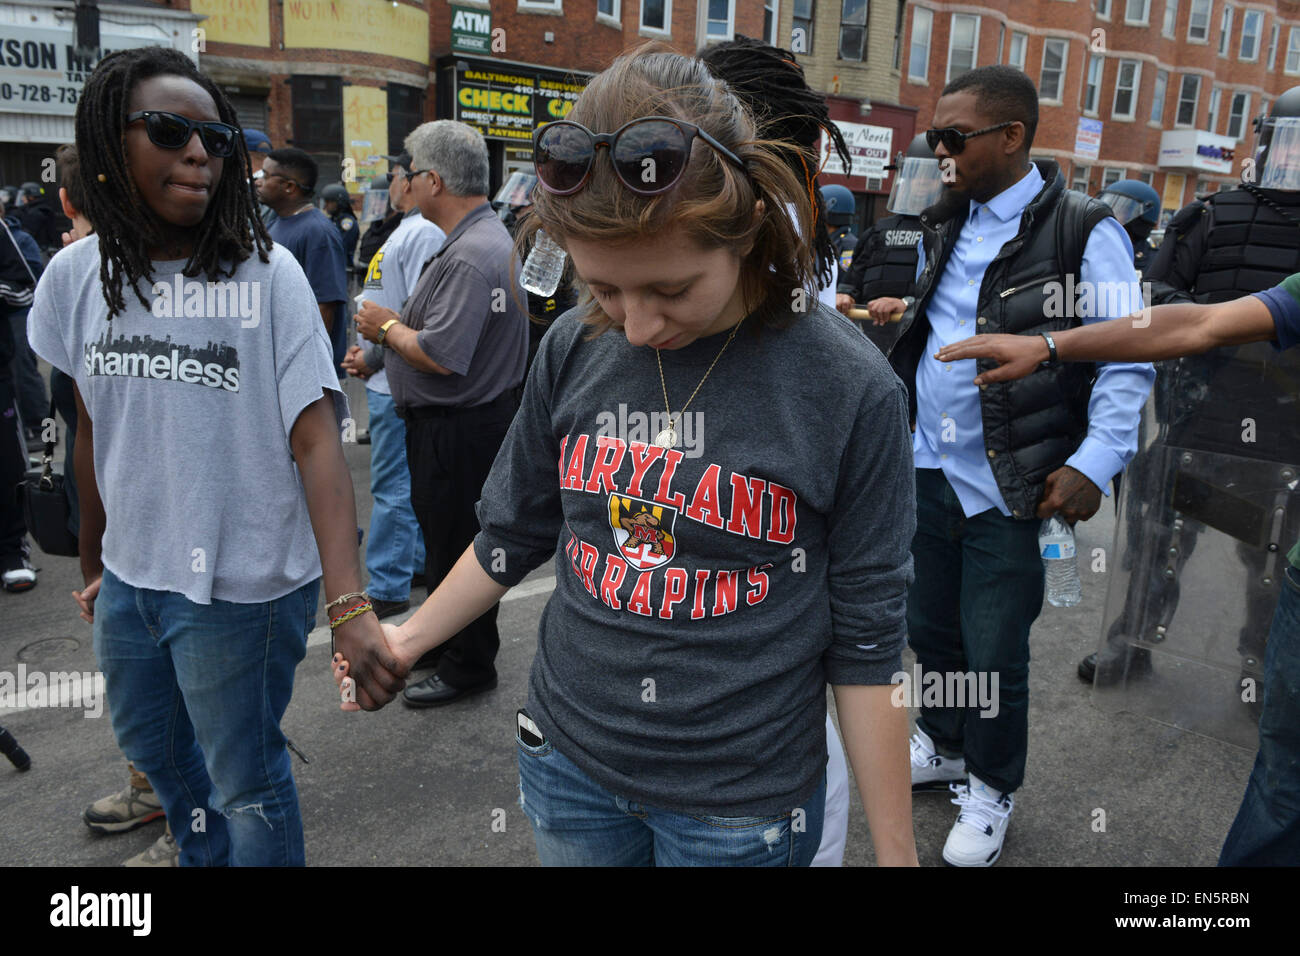 Baltimore, MD, Baltimore, Maryland, USA. 28th Apr, 2015. Neighbors and others advocating nonviolence stand in a - Stock Image